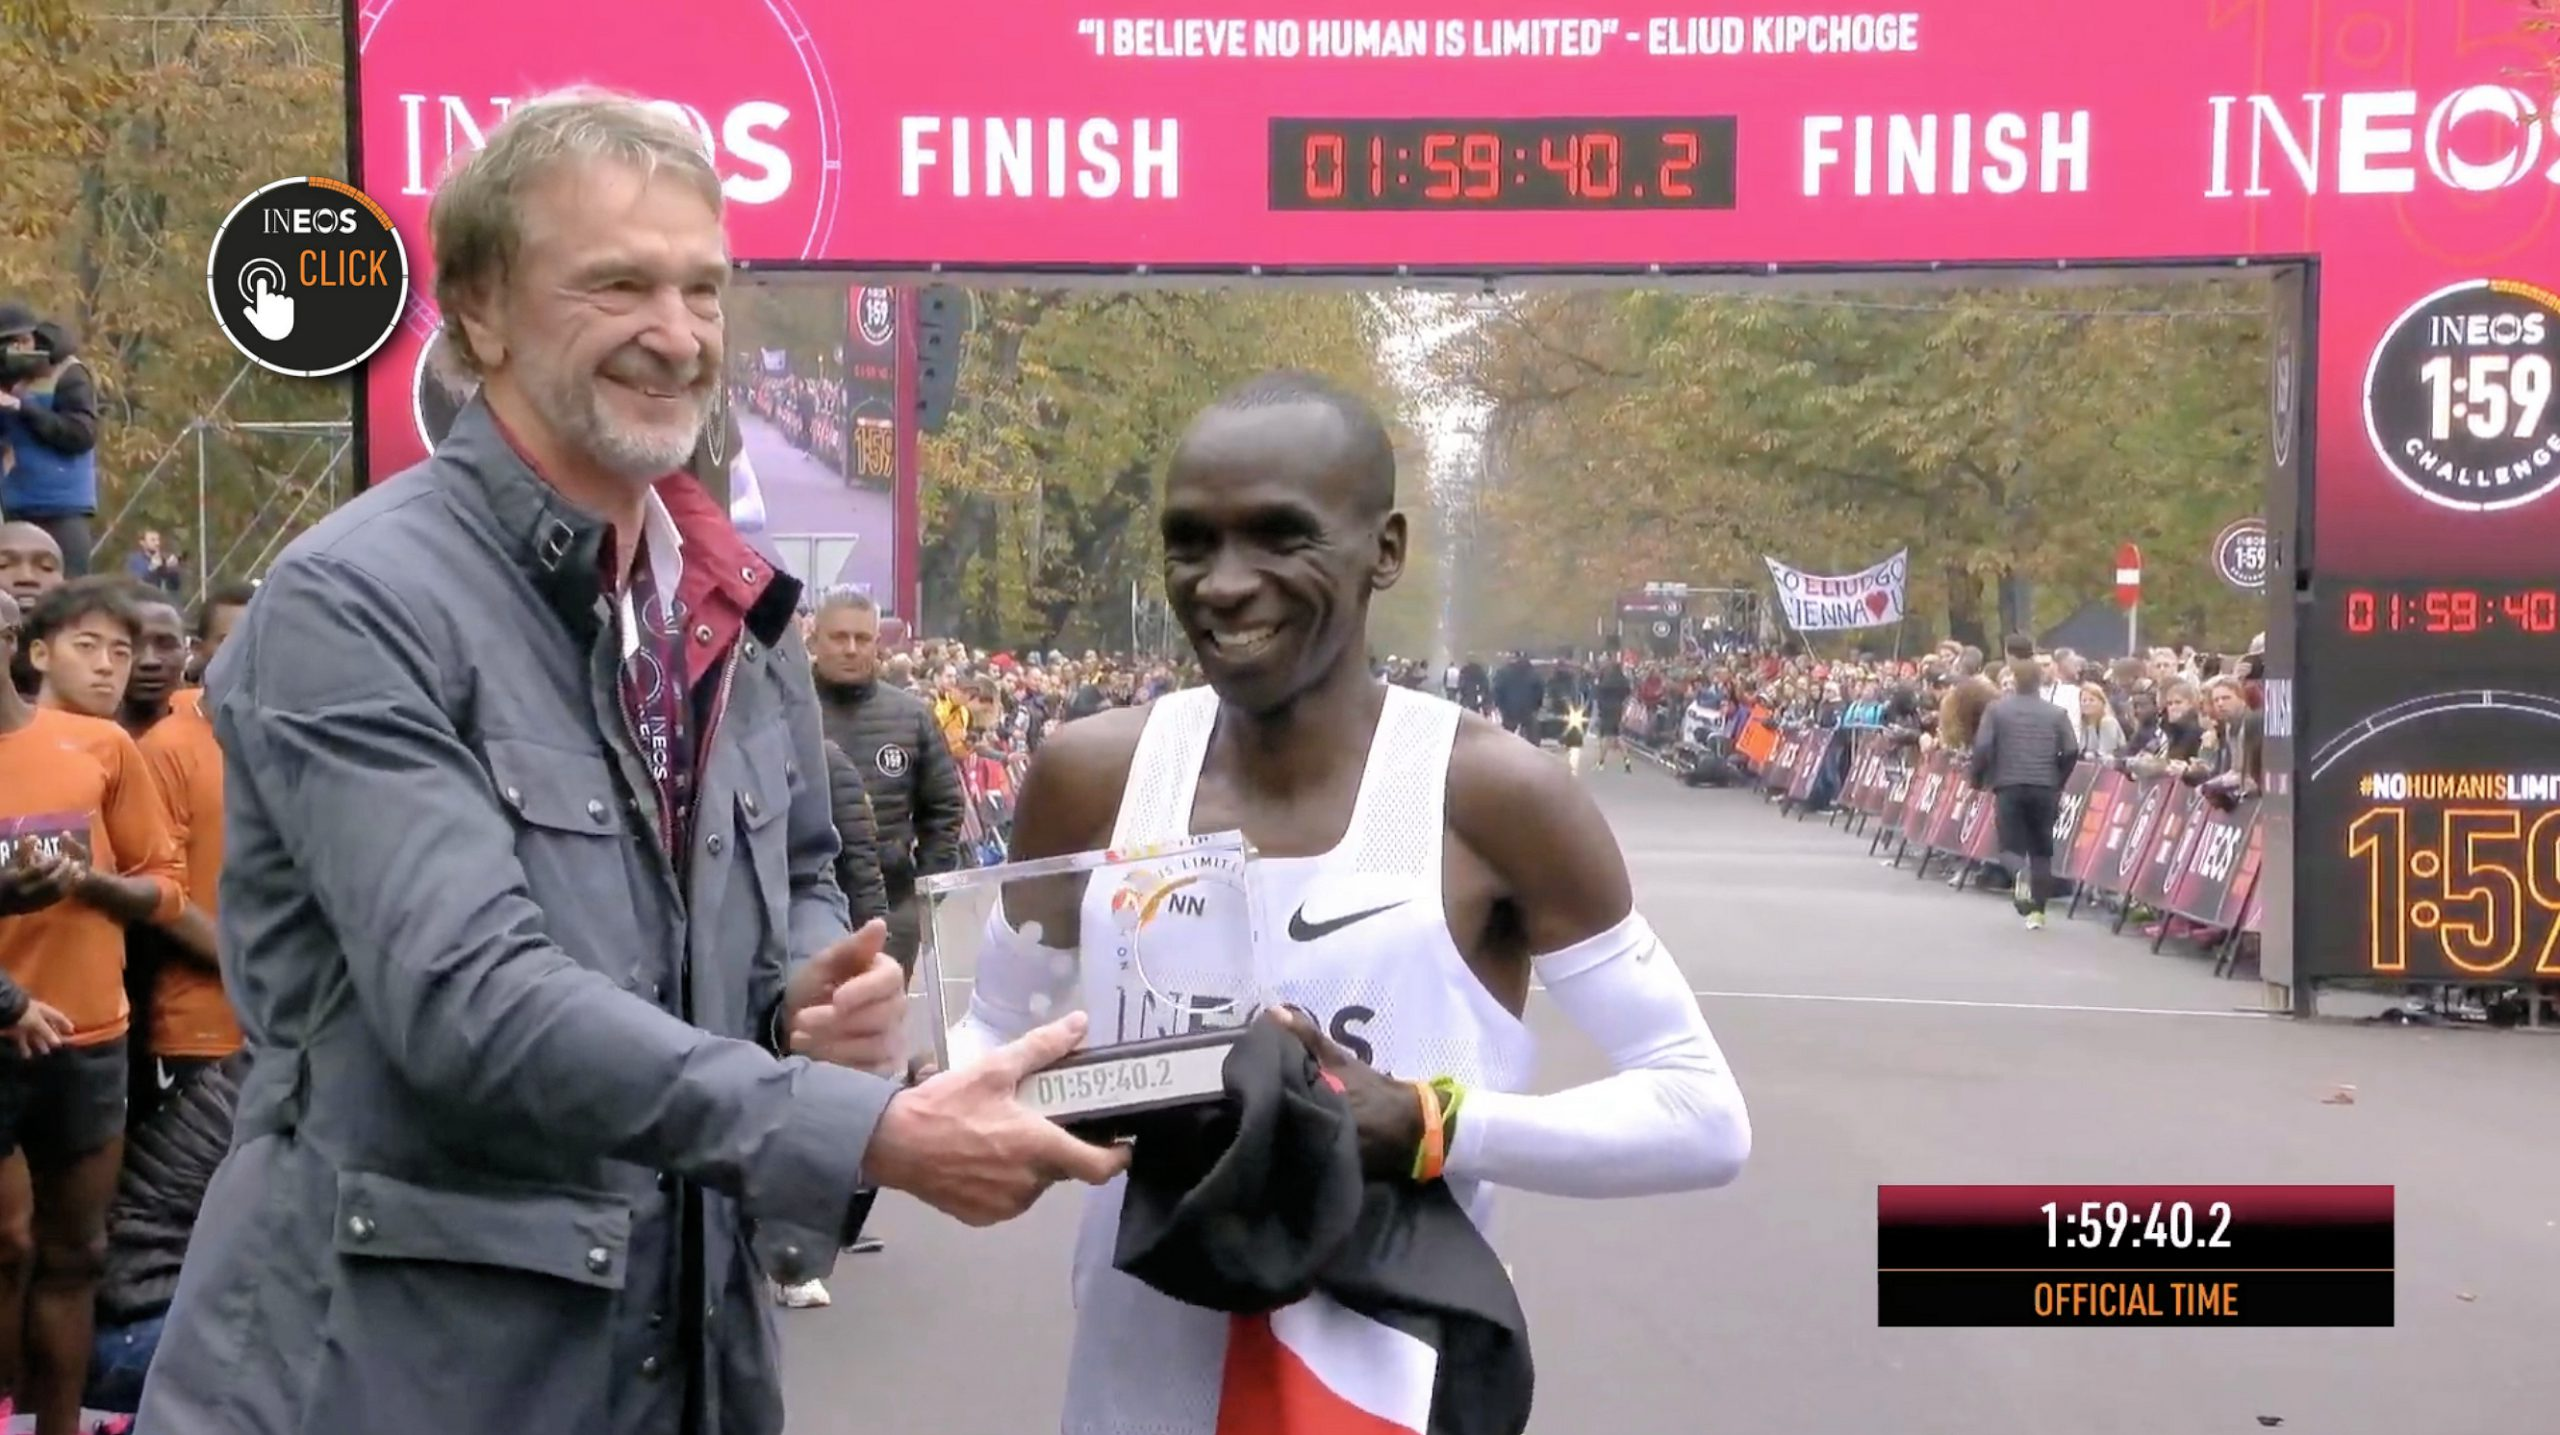 The physiology of Eliud Kipchoge and his 'Breaking2' pacers